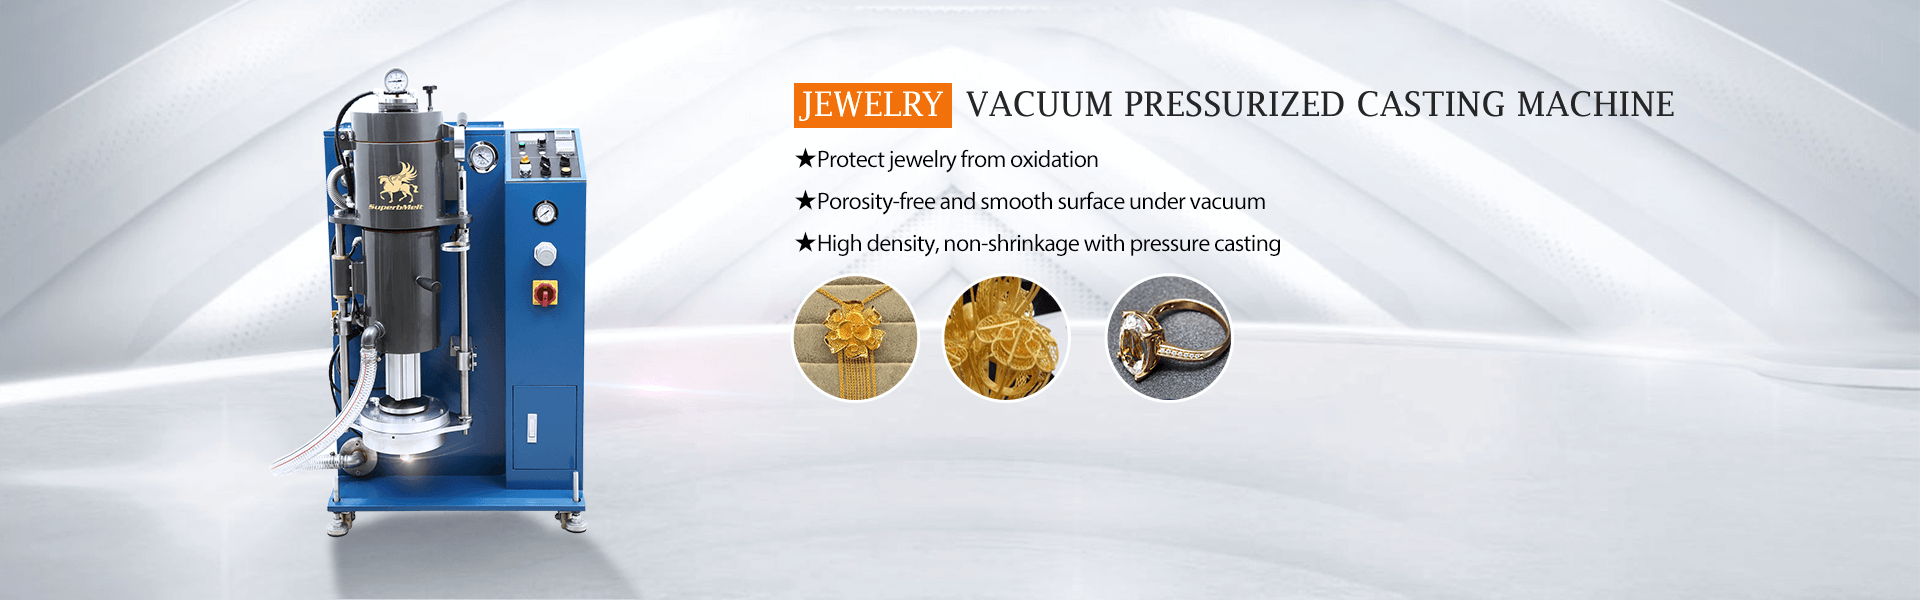 jewelry machinery: vacuum gold casting machine